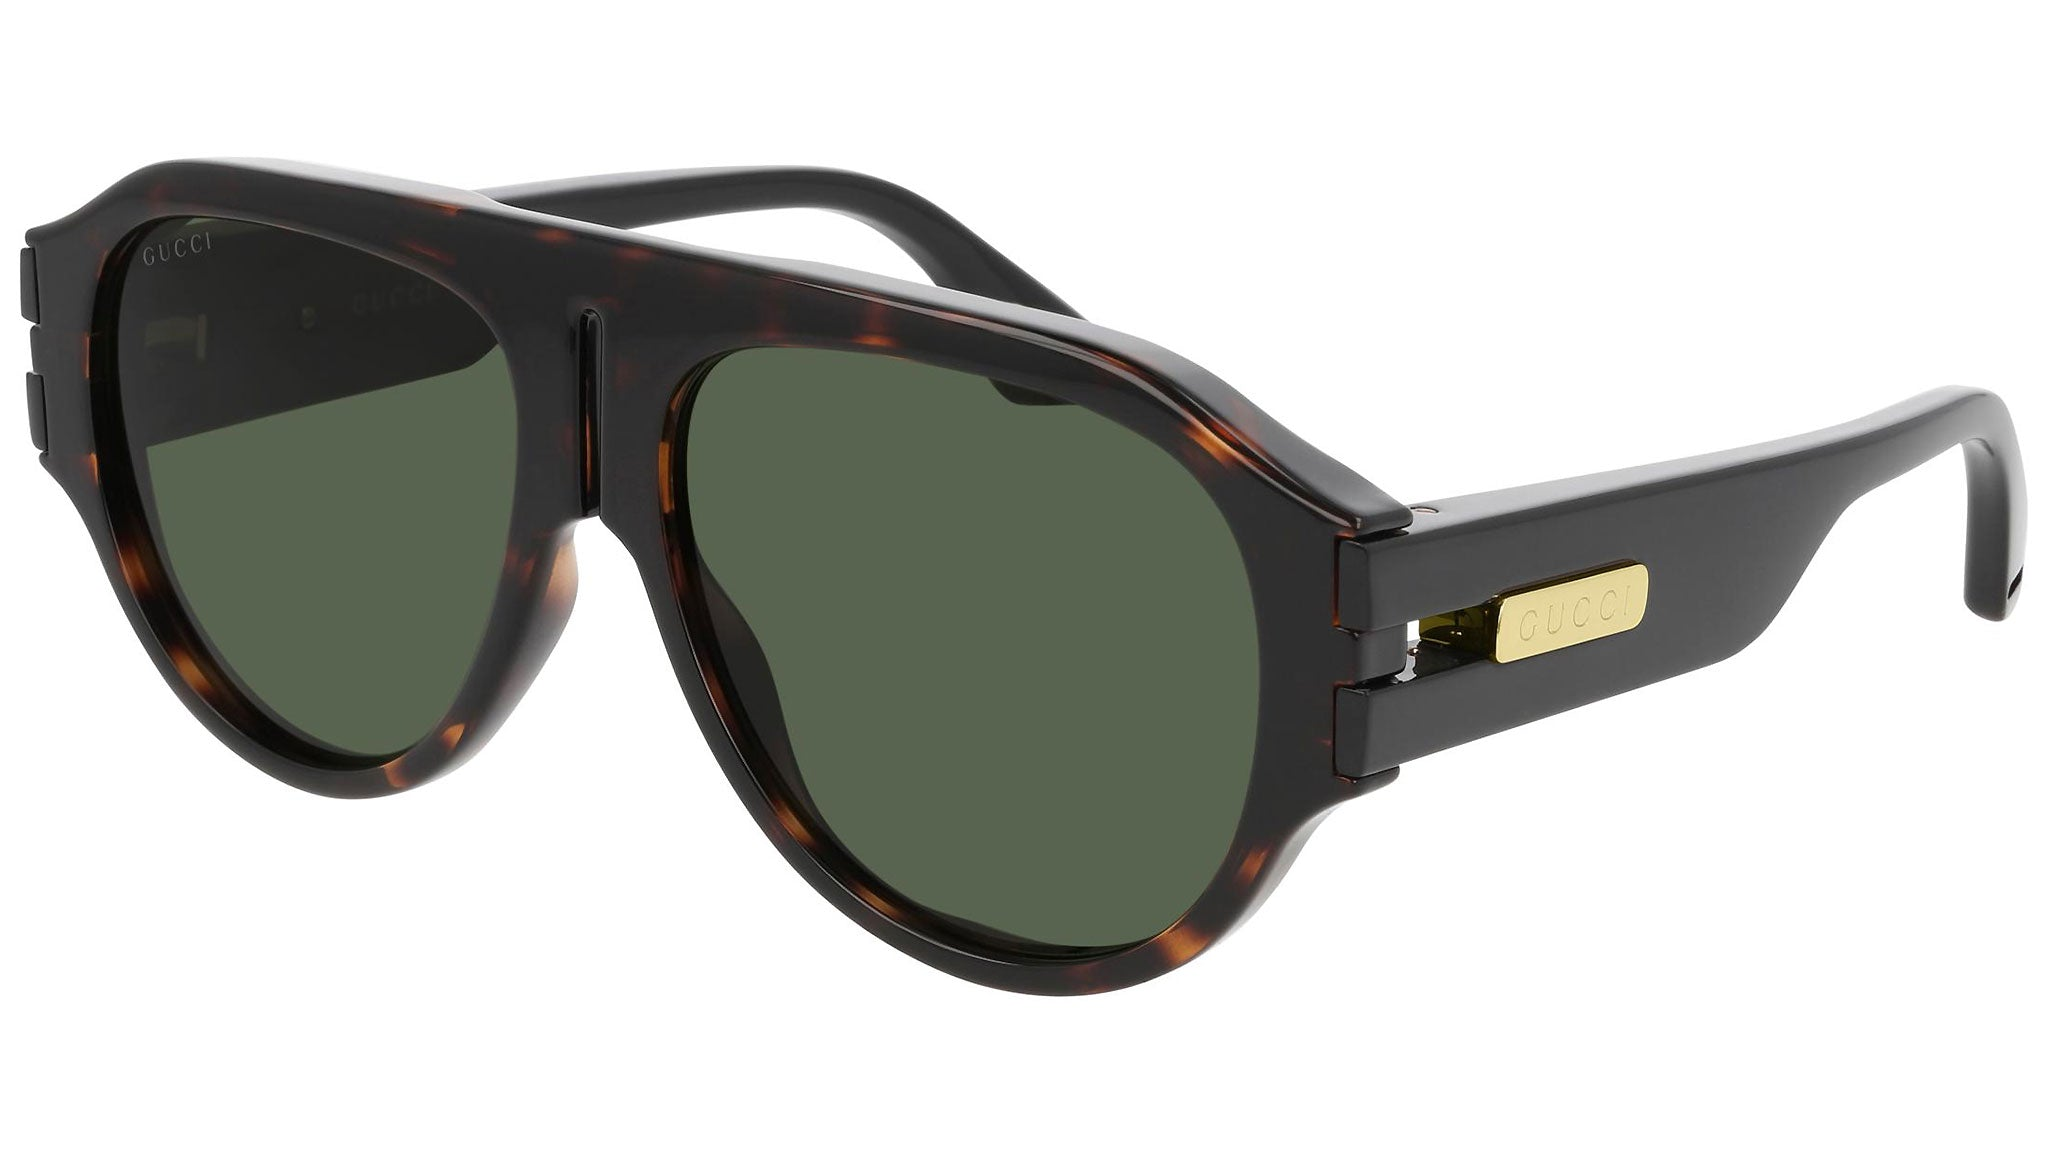 GG0665S dark havana and green